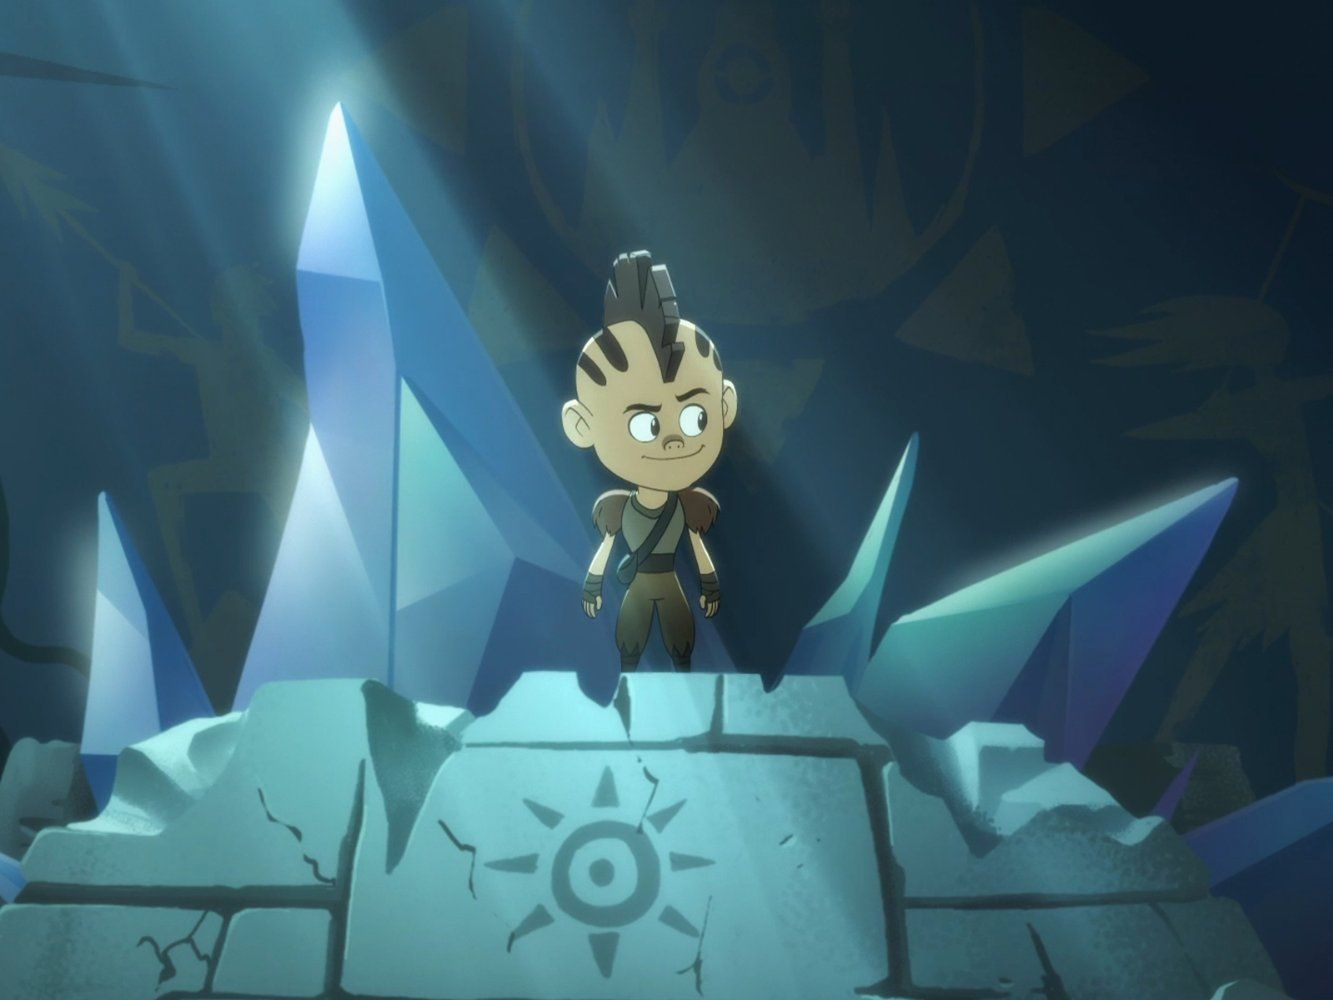 Niko and the Sword of Light Review: A Magical Amazon